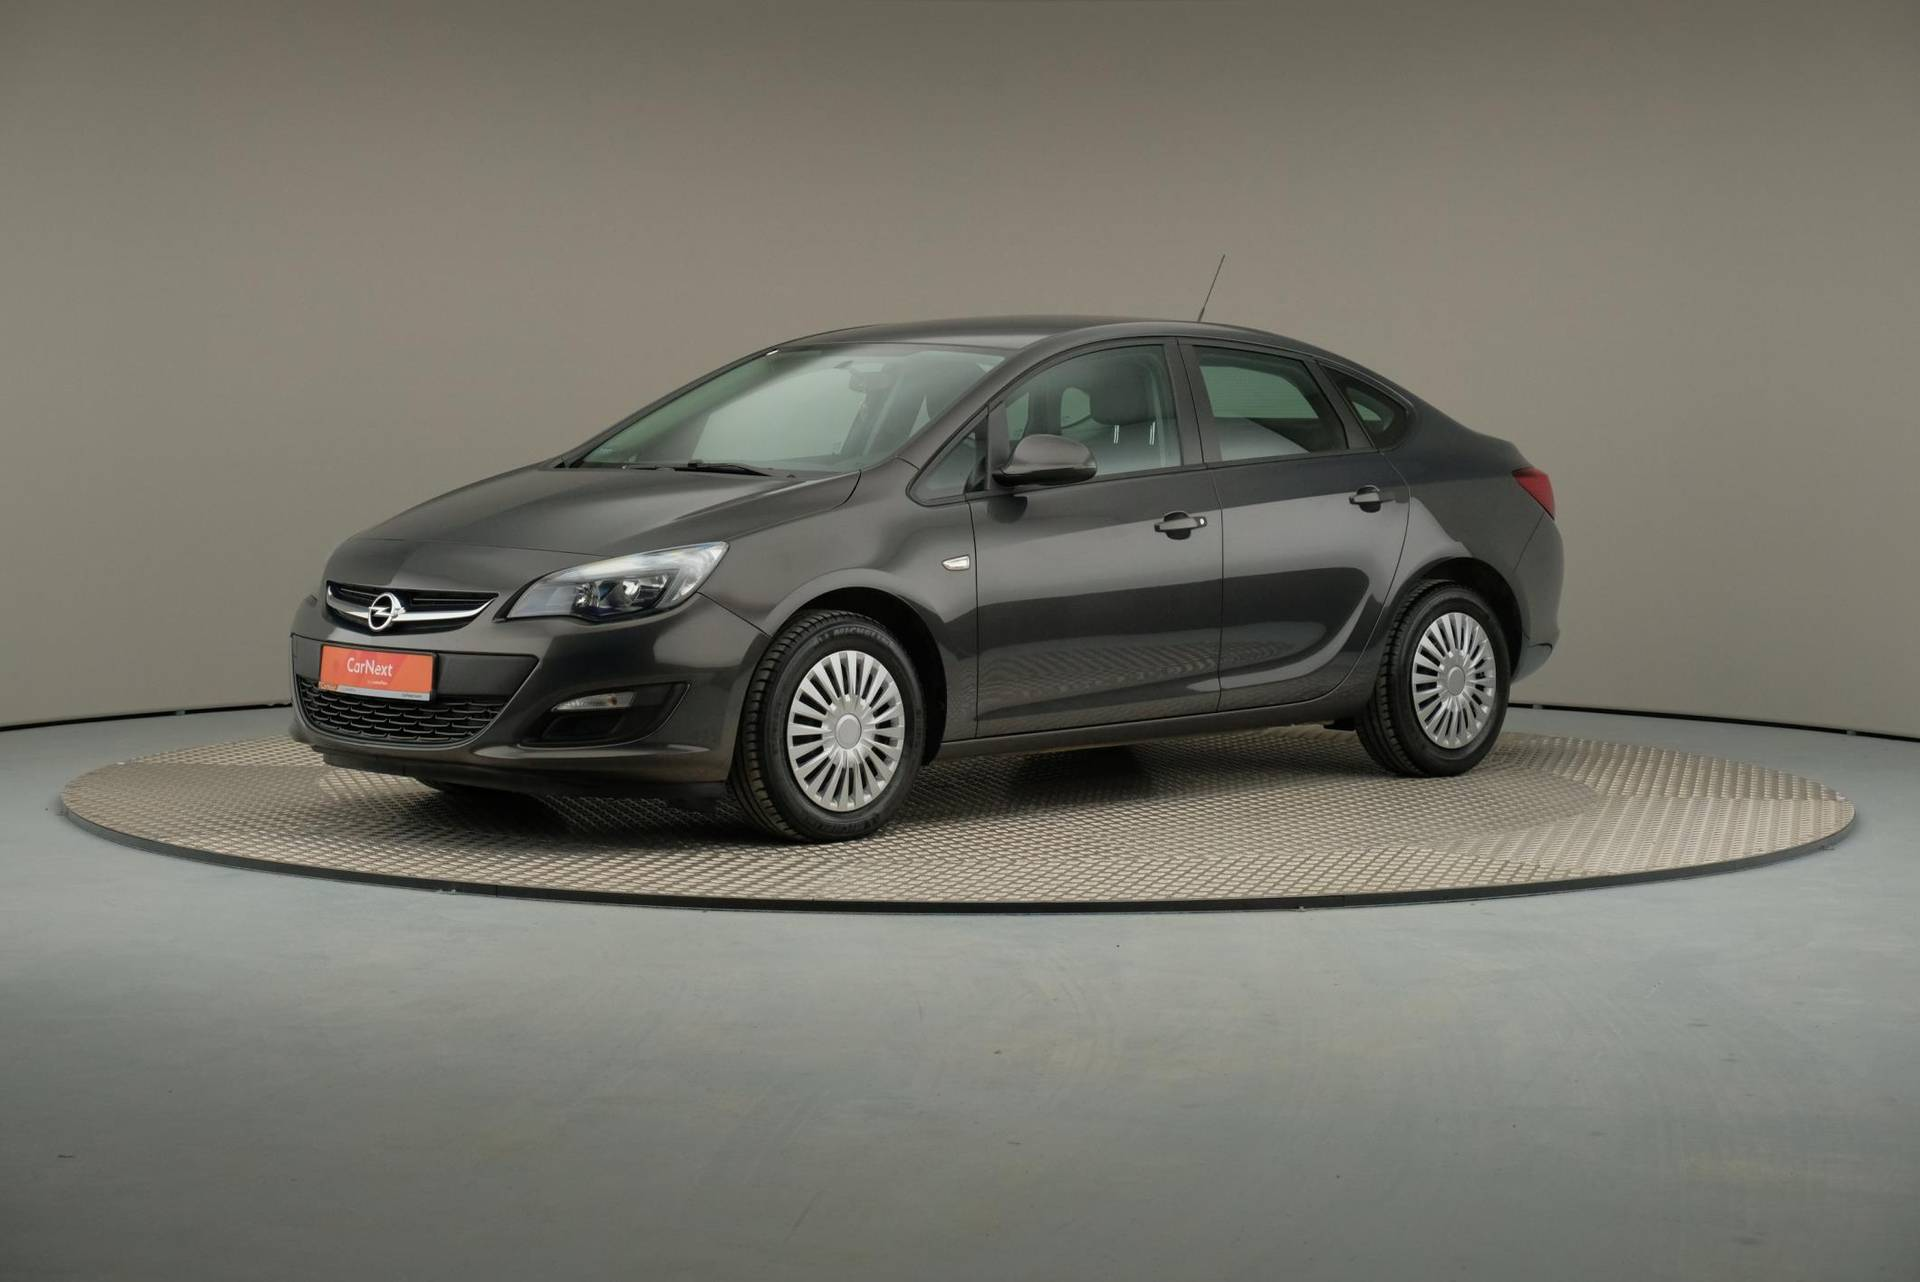 Opel Astra Astra 1.6 Twinport 115km, 360-image0